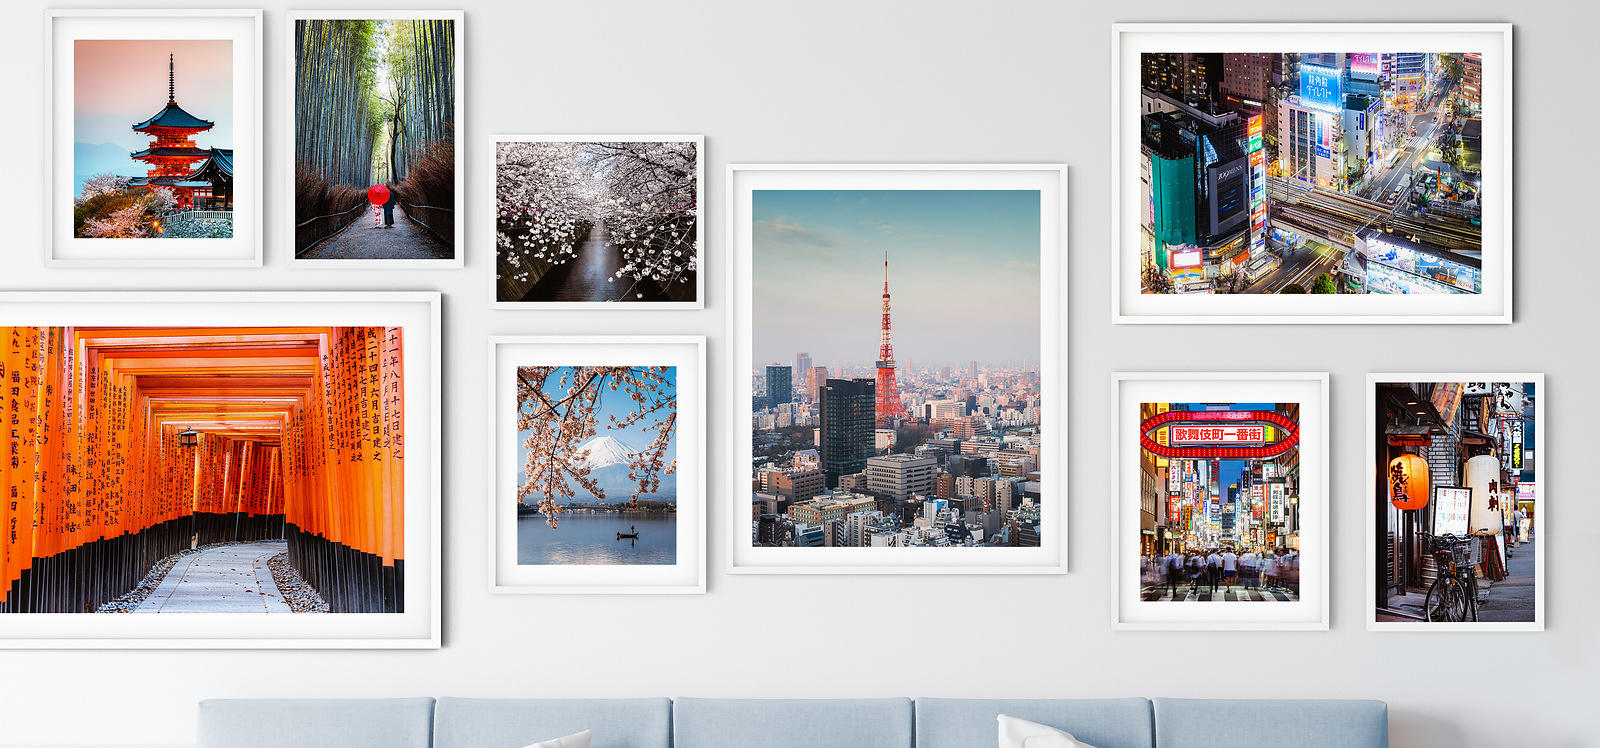 wall-art-frames-japan-banner